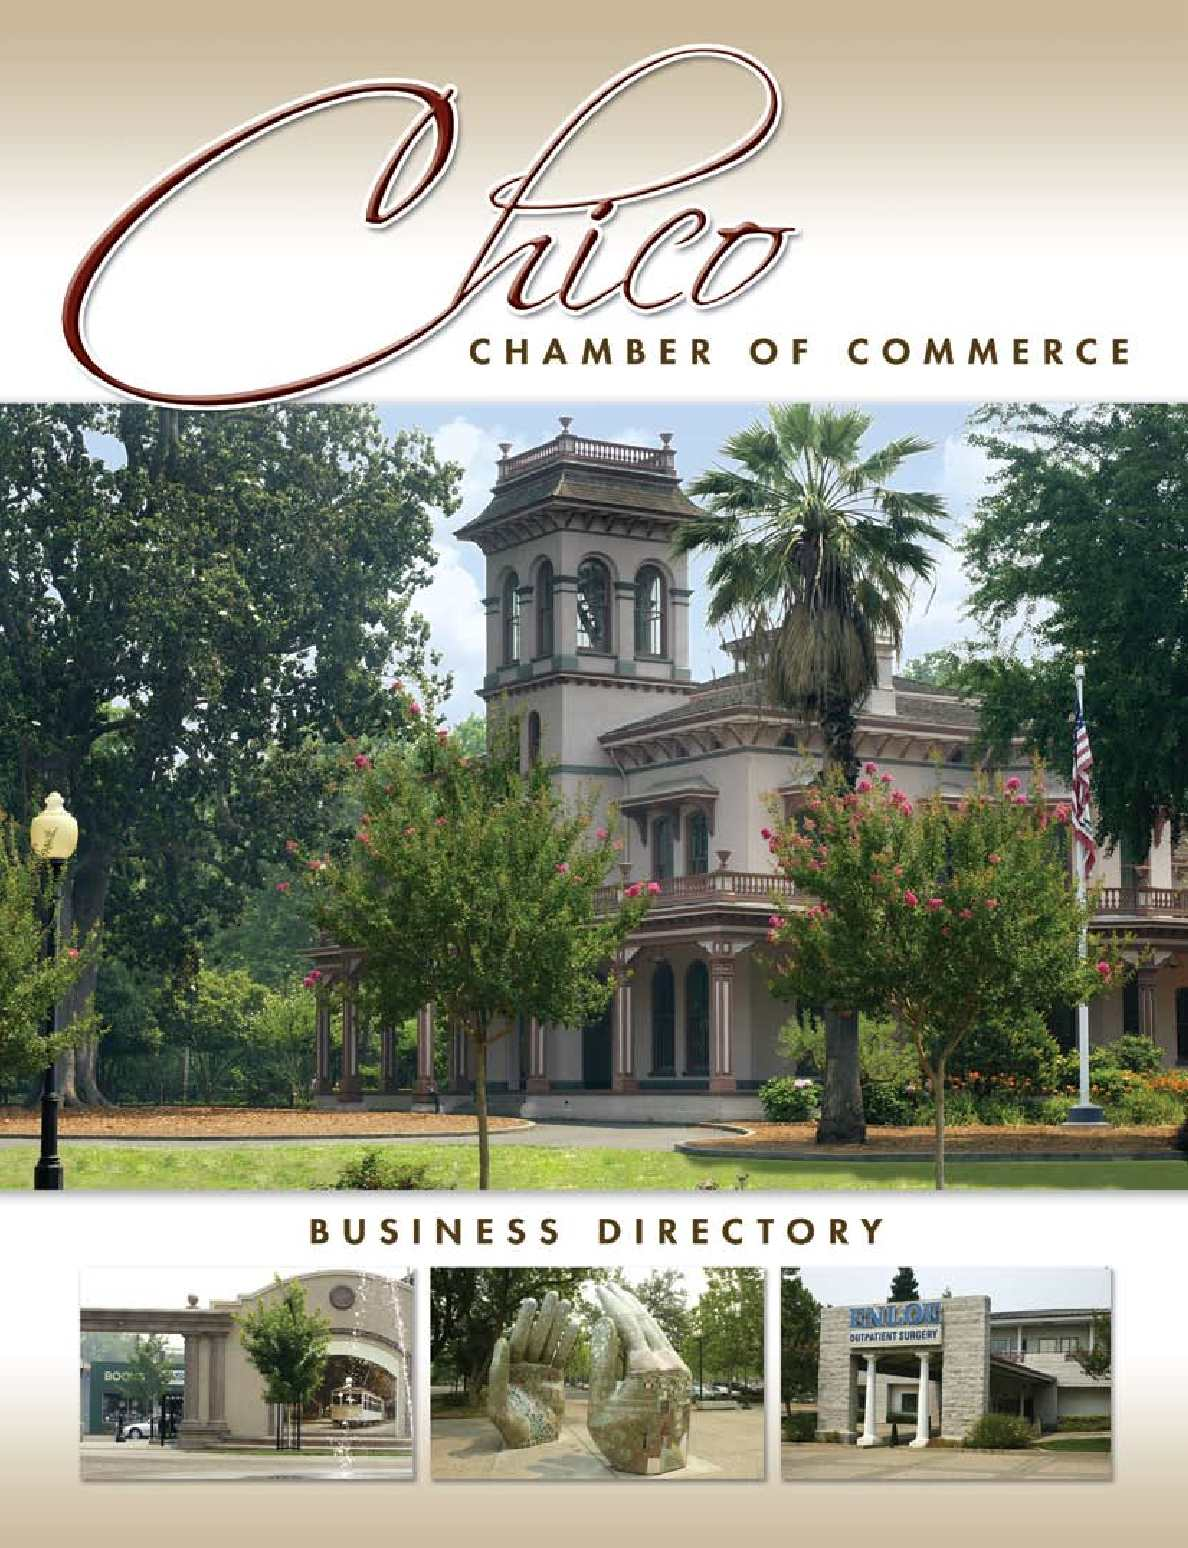 Calamo Chico Chamber Of Commerce Business Directory Richard 4847 Ttec Automotive Electronics